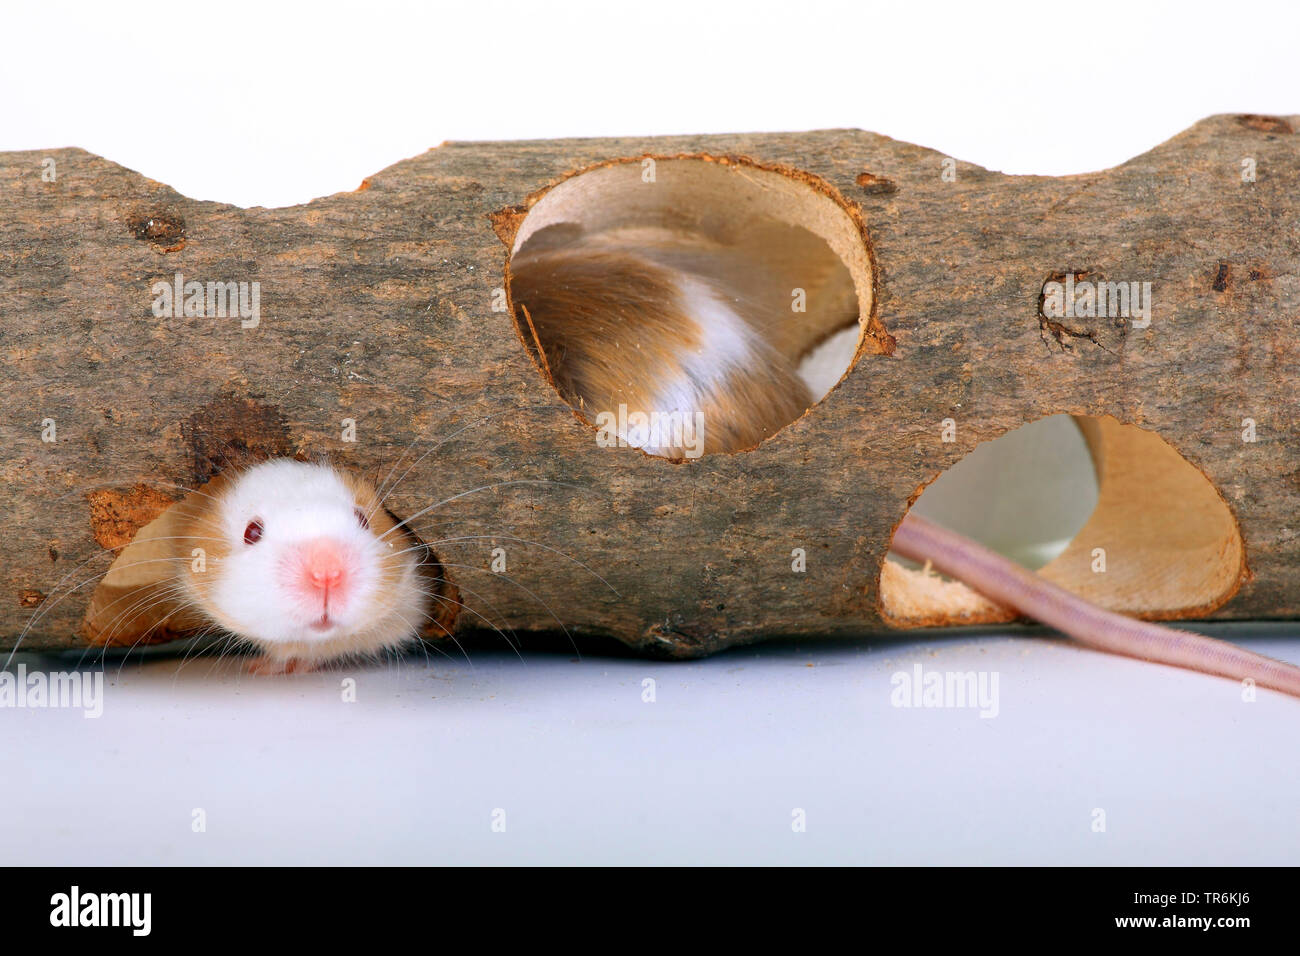 fancy mouse (Mus musculus), in a woode tube, Germany Stock Photo